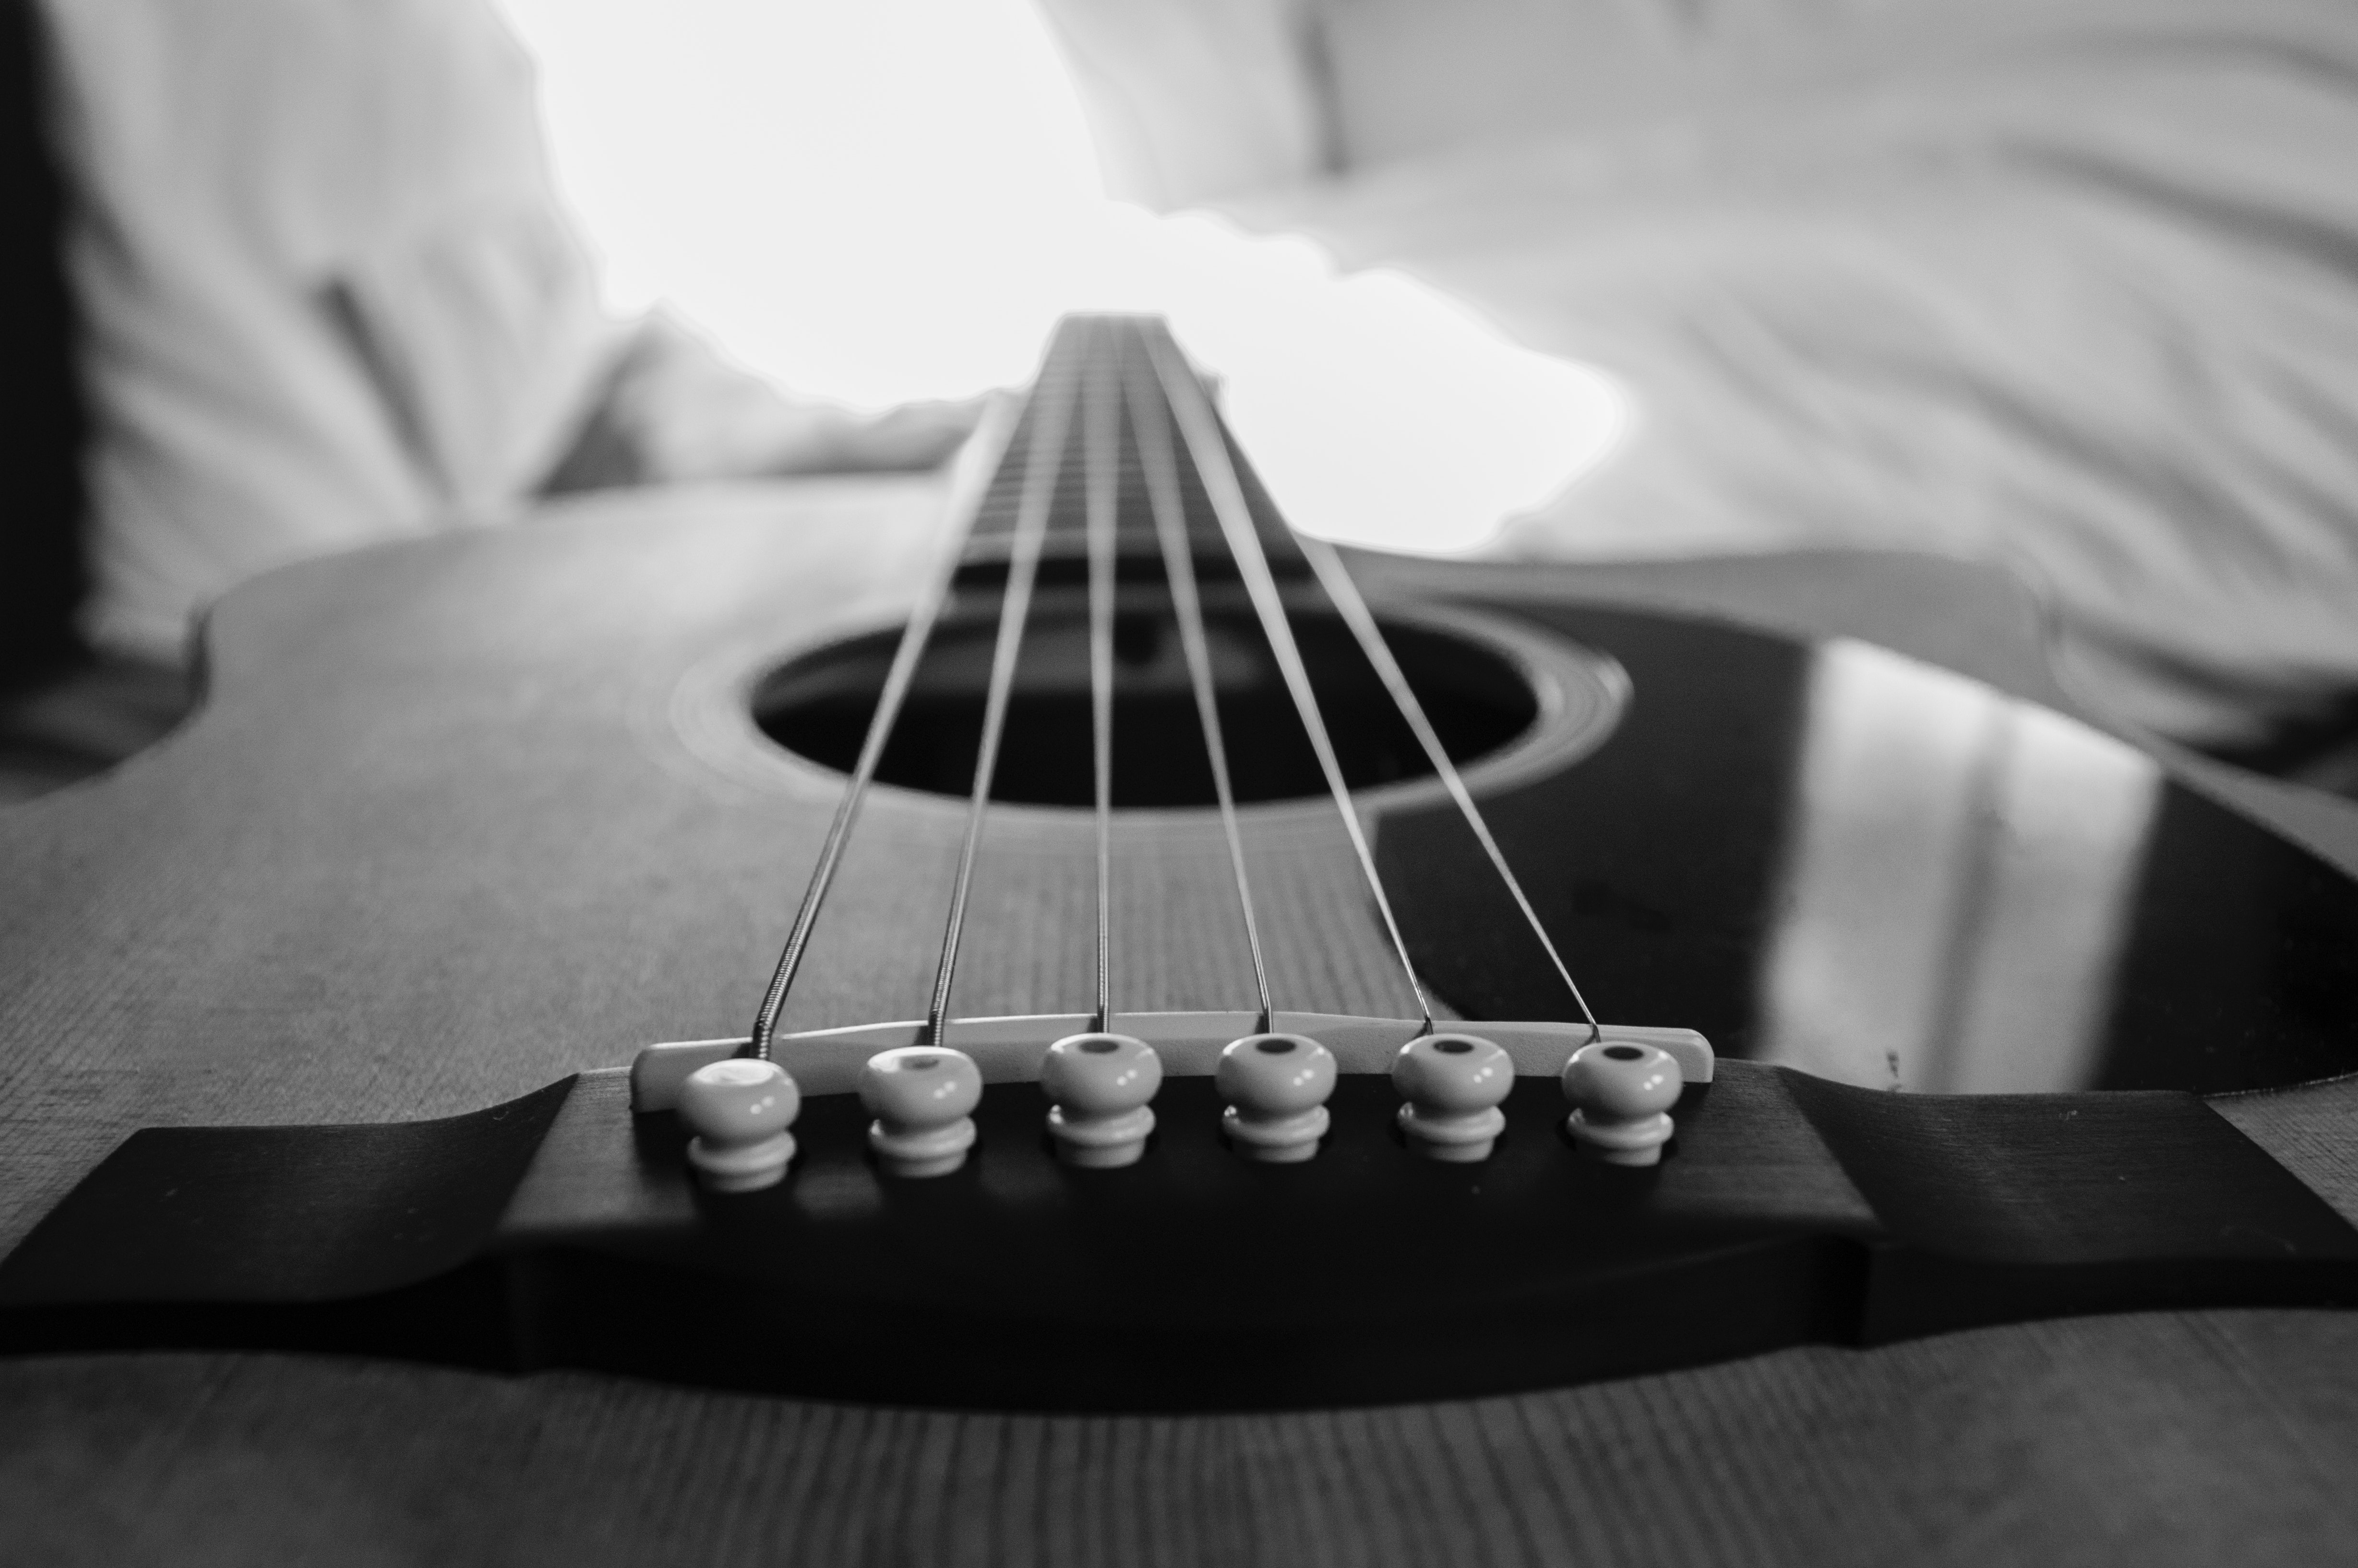 Wooden Acoustic Guitar Macro Photography In Grayscale Photo Free